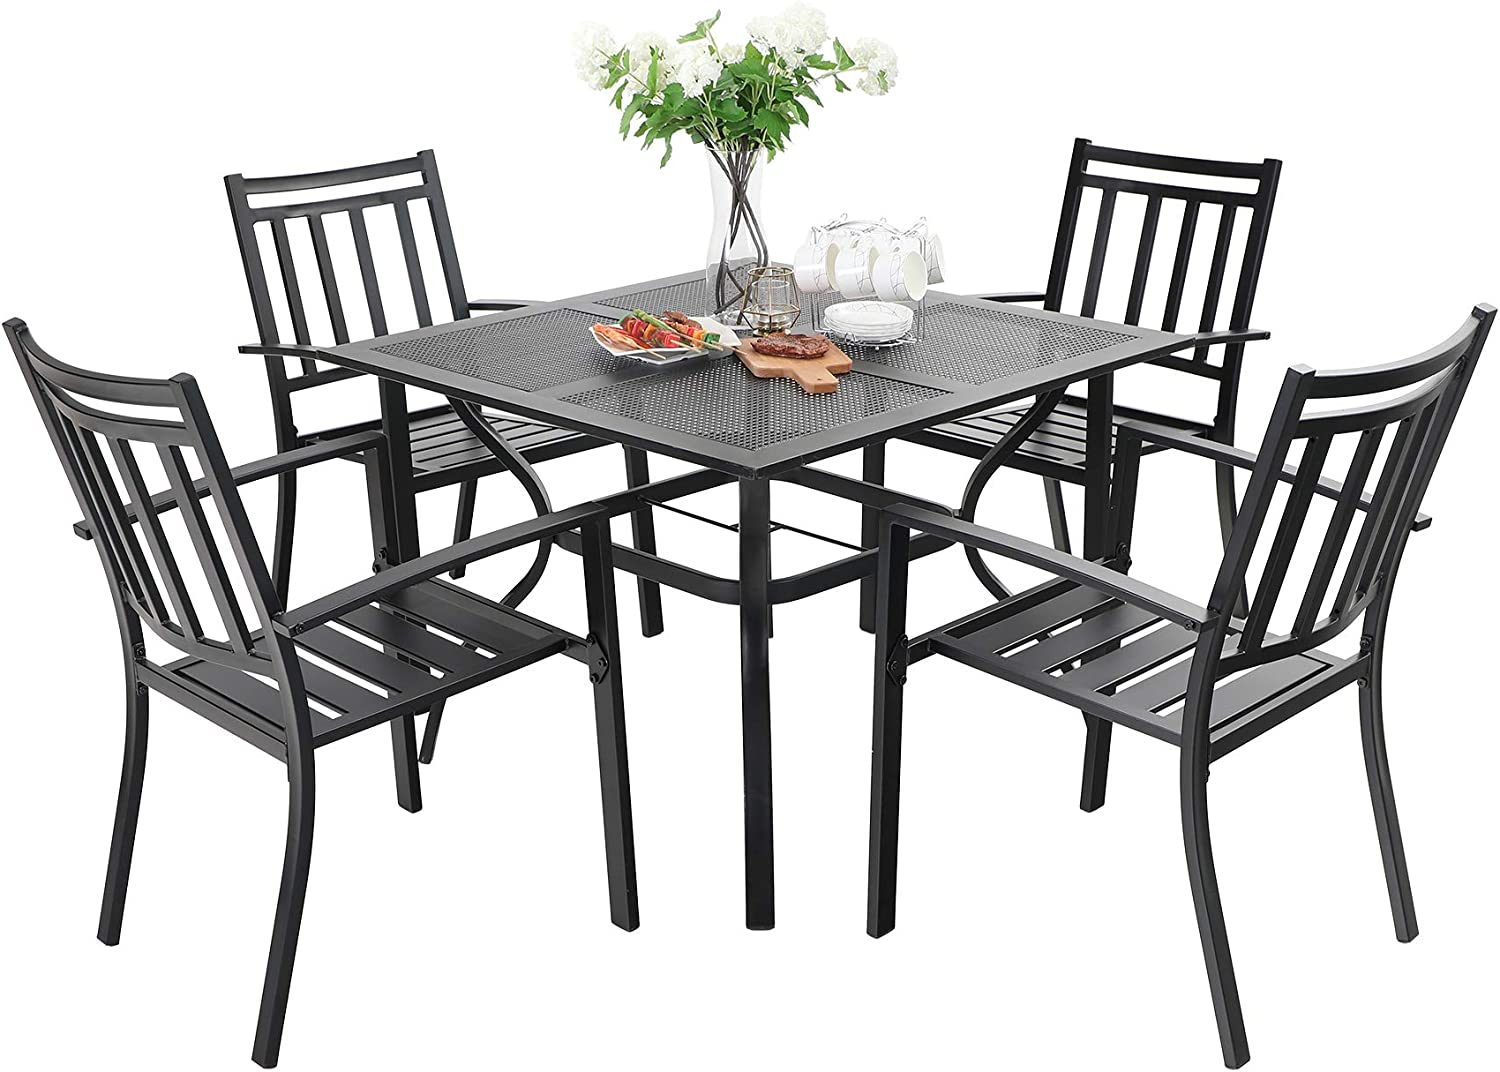 MFSTUDIO 5PCS Patio Dining Table Set 4 Stackable Metal Slat Armrest Chairs and 1 Square Metal Table Outdoor Furniture Sets for Backyard Lown Garden